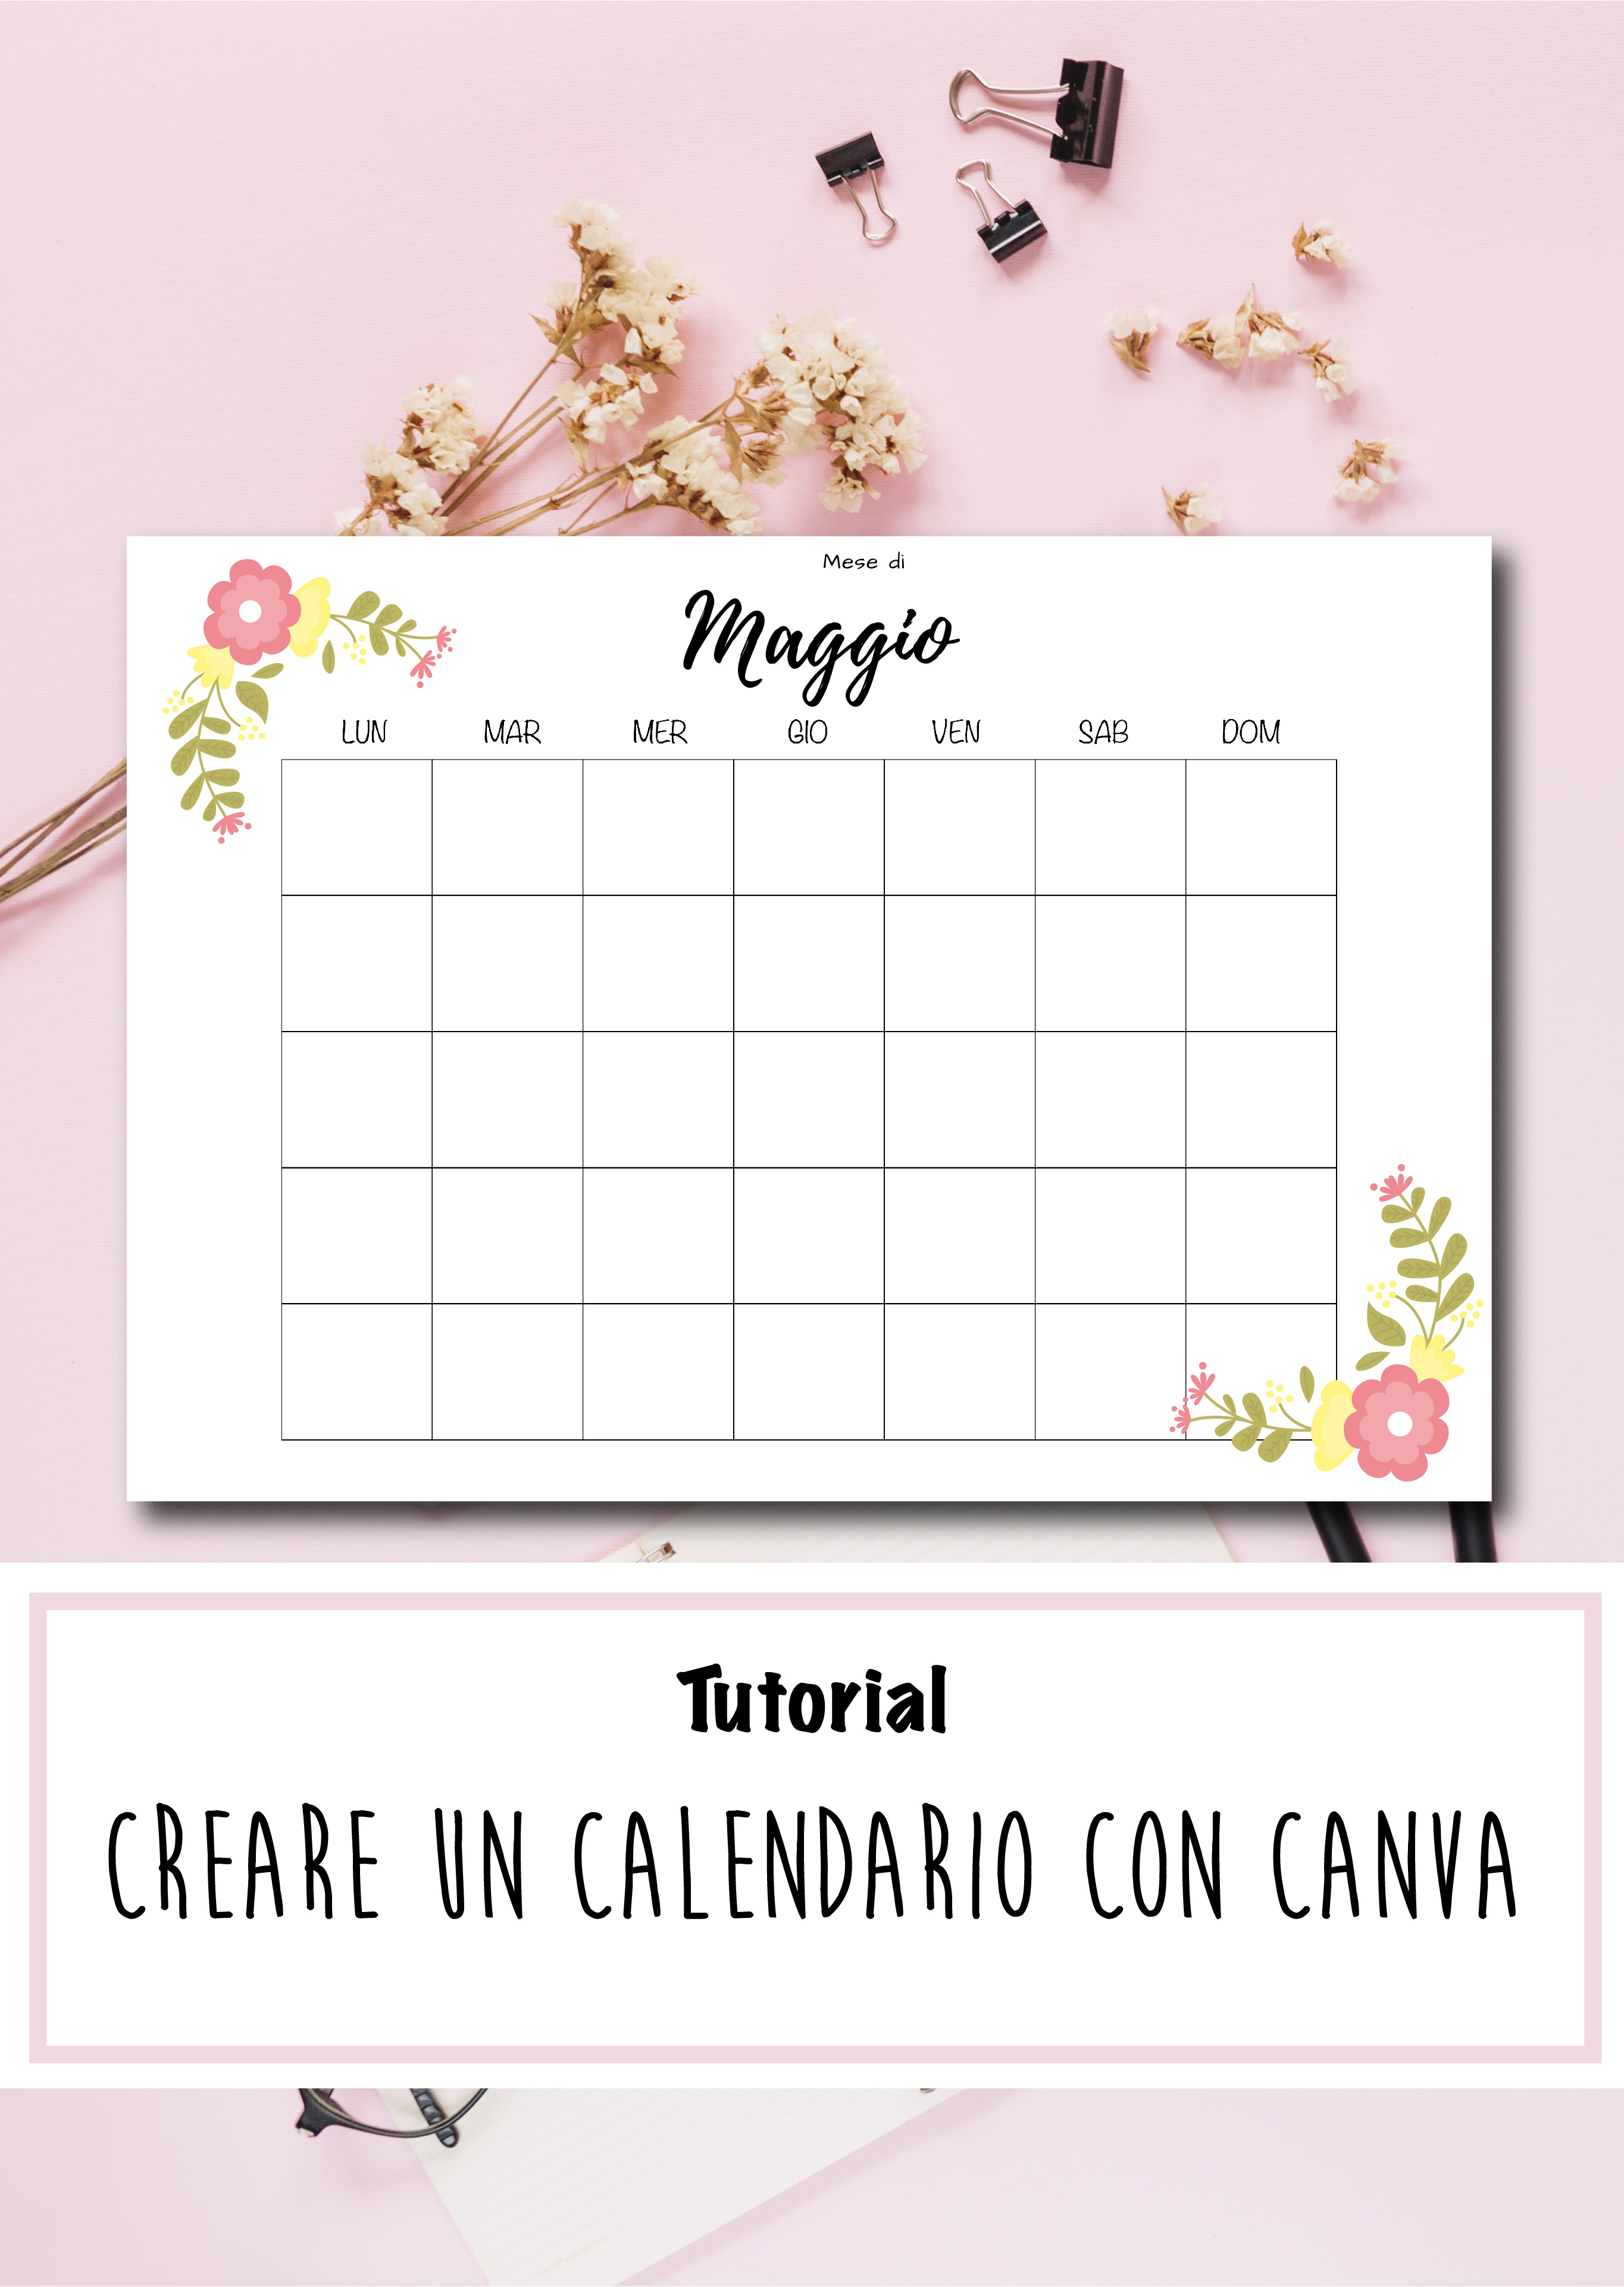 Come Creare Un Calendario Con Excel.Come Fare Un Calendario Calendario 2020